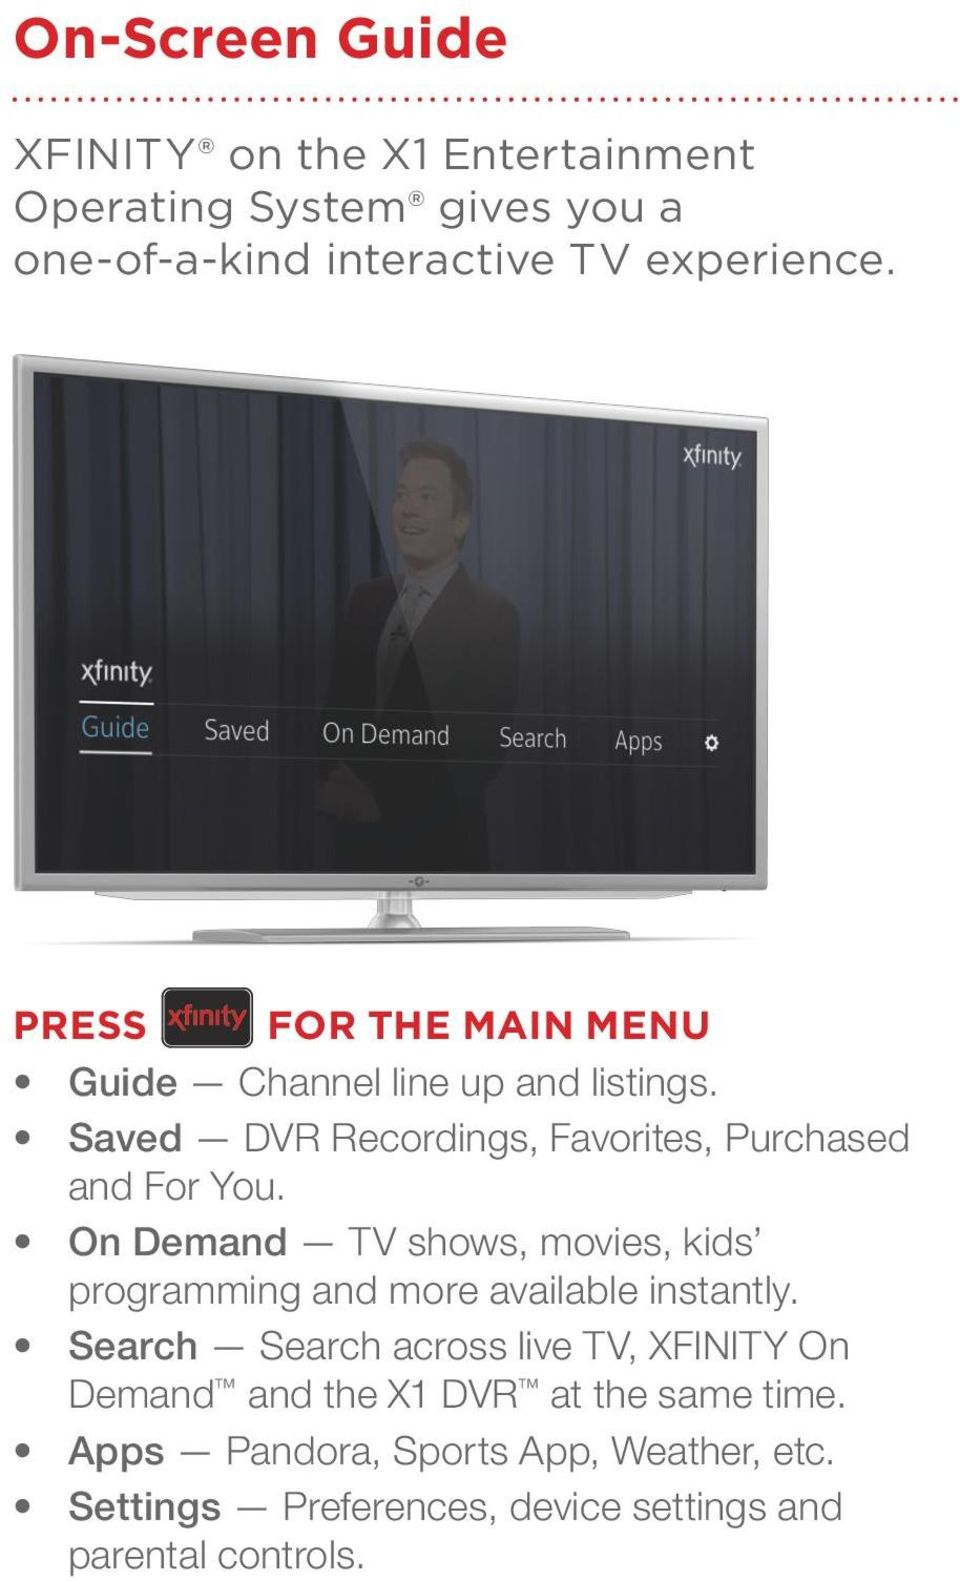 On Demand TV shows, movies, kids programming and more available instantly.